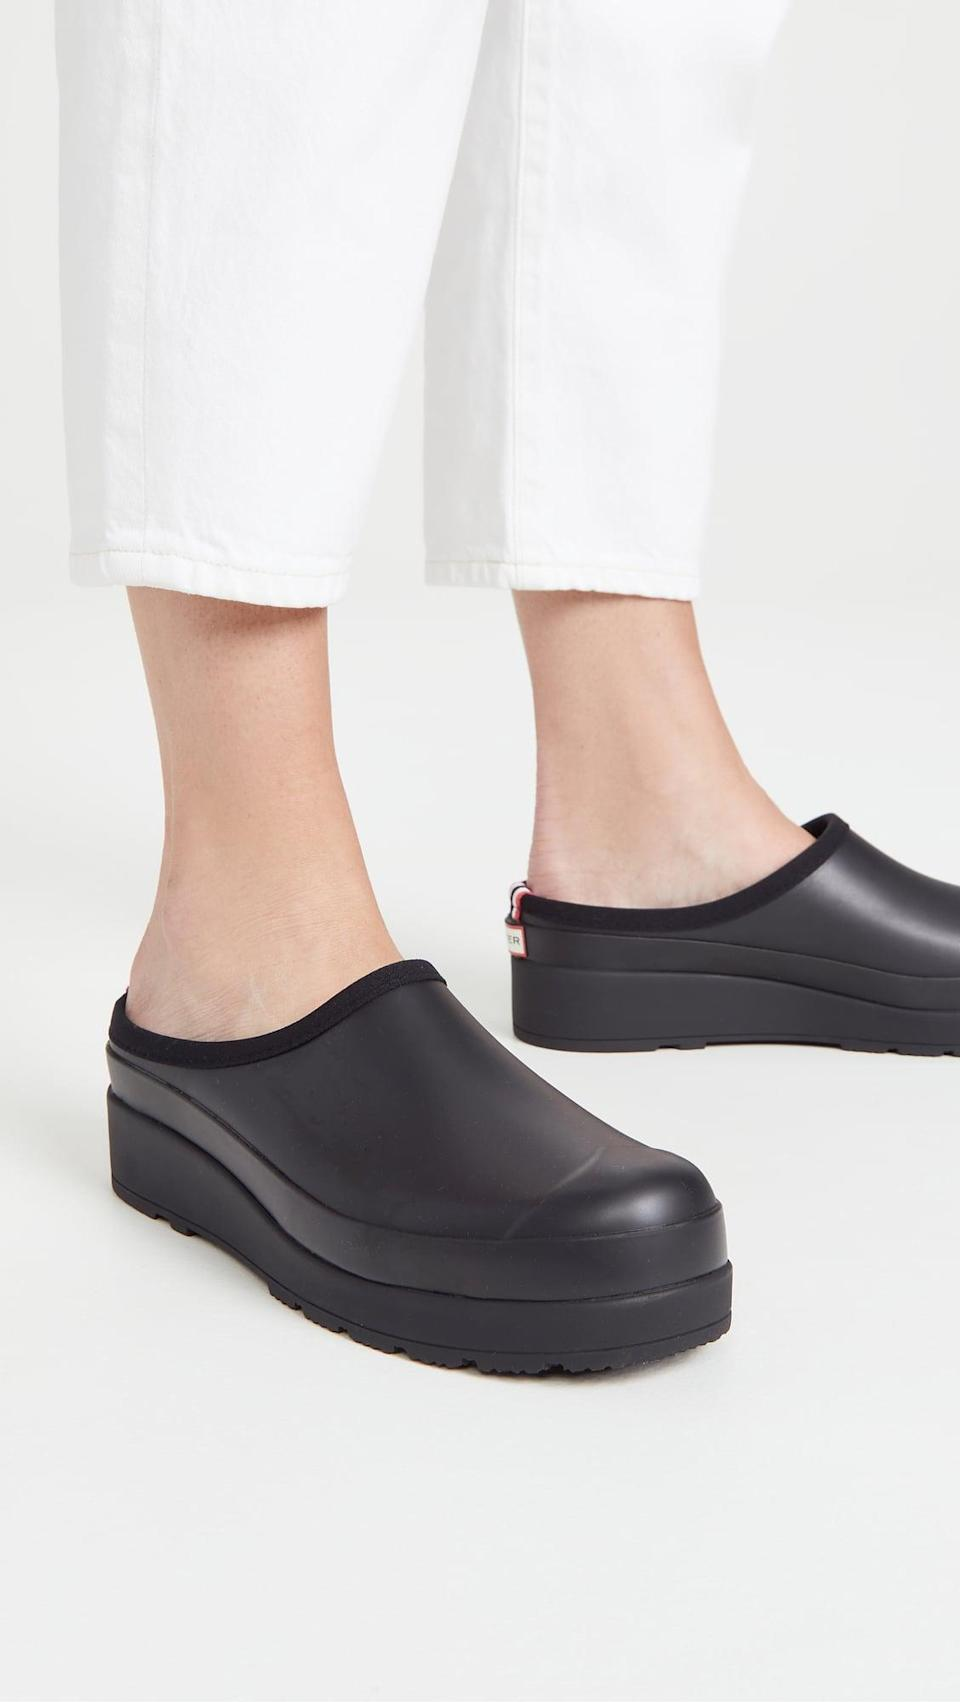 <p>If you're a fan of the brand's rain boots, you also need the <span>Hunter Boots Original Play Clogs</span> ($75). Perfect for running quick errands or just to look chic in the rain.</p>